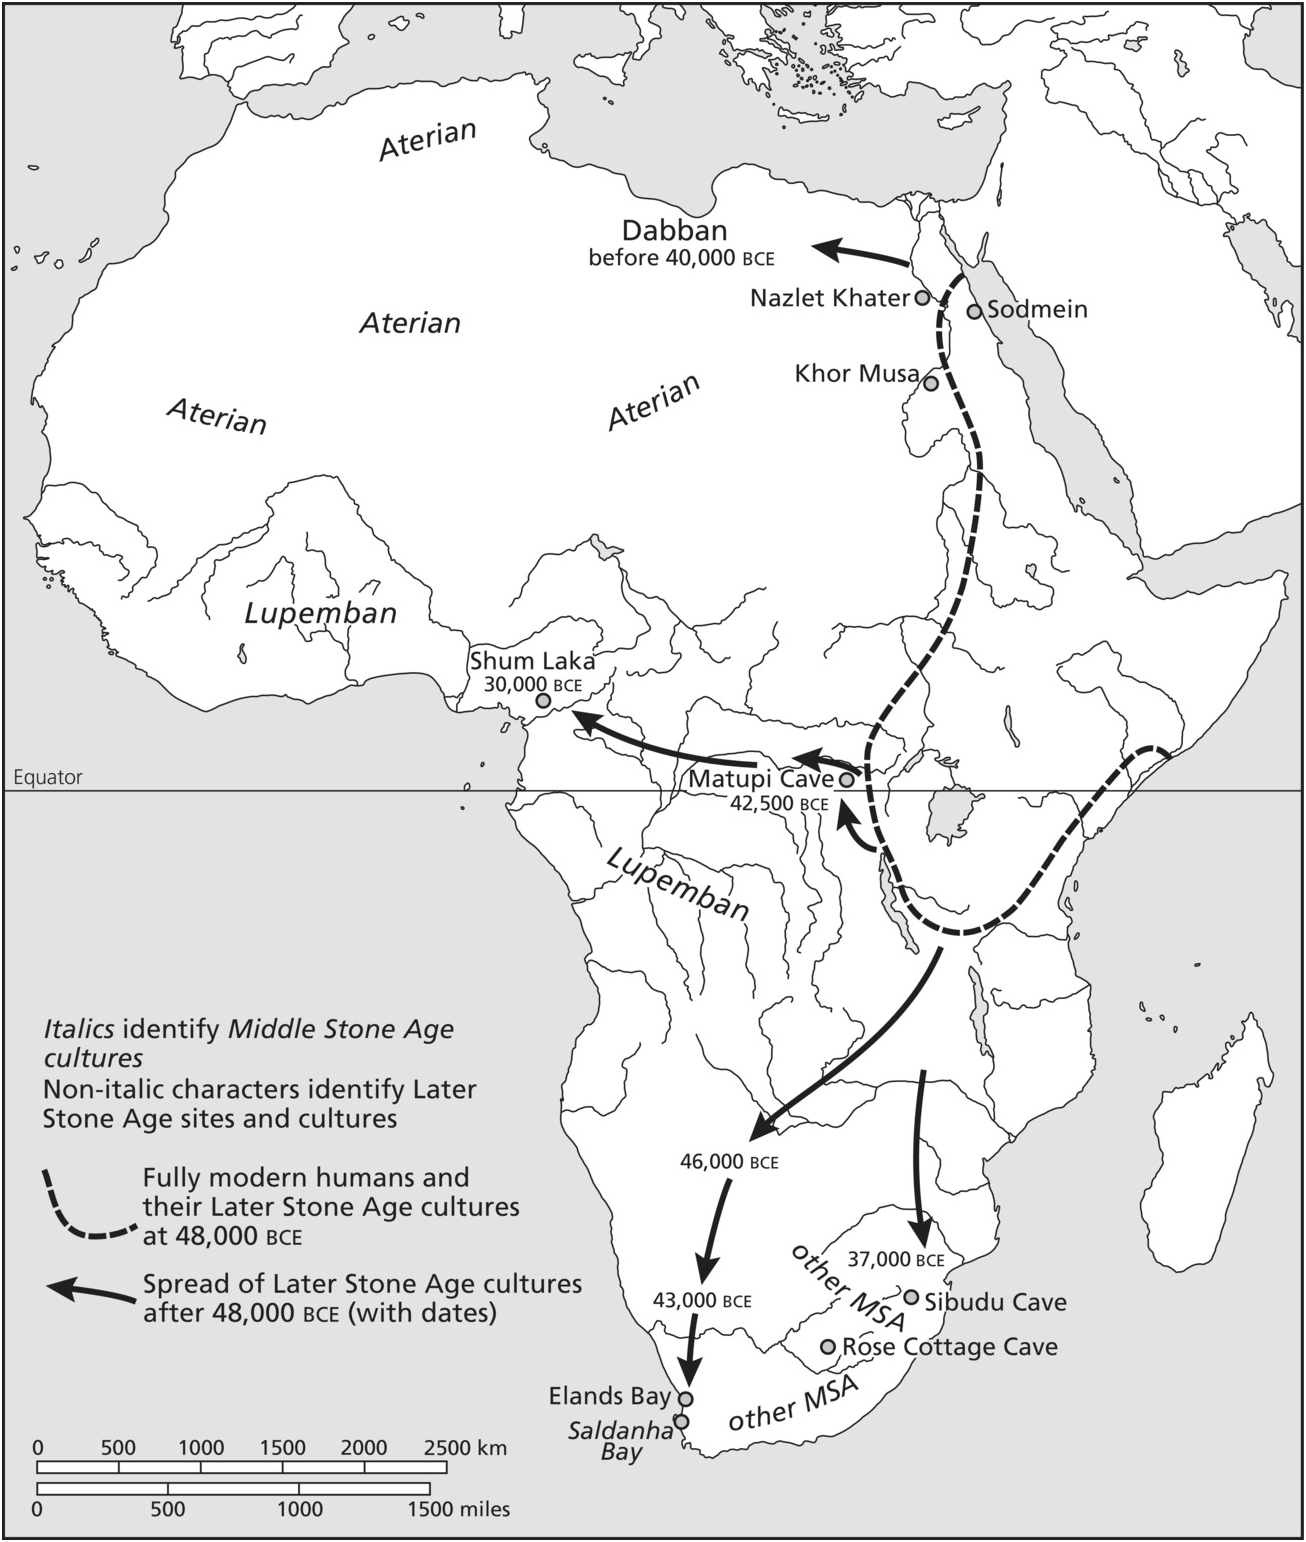 African Middle Stone Age